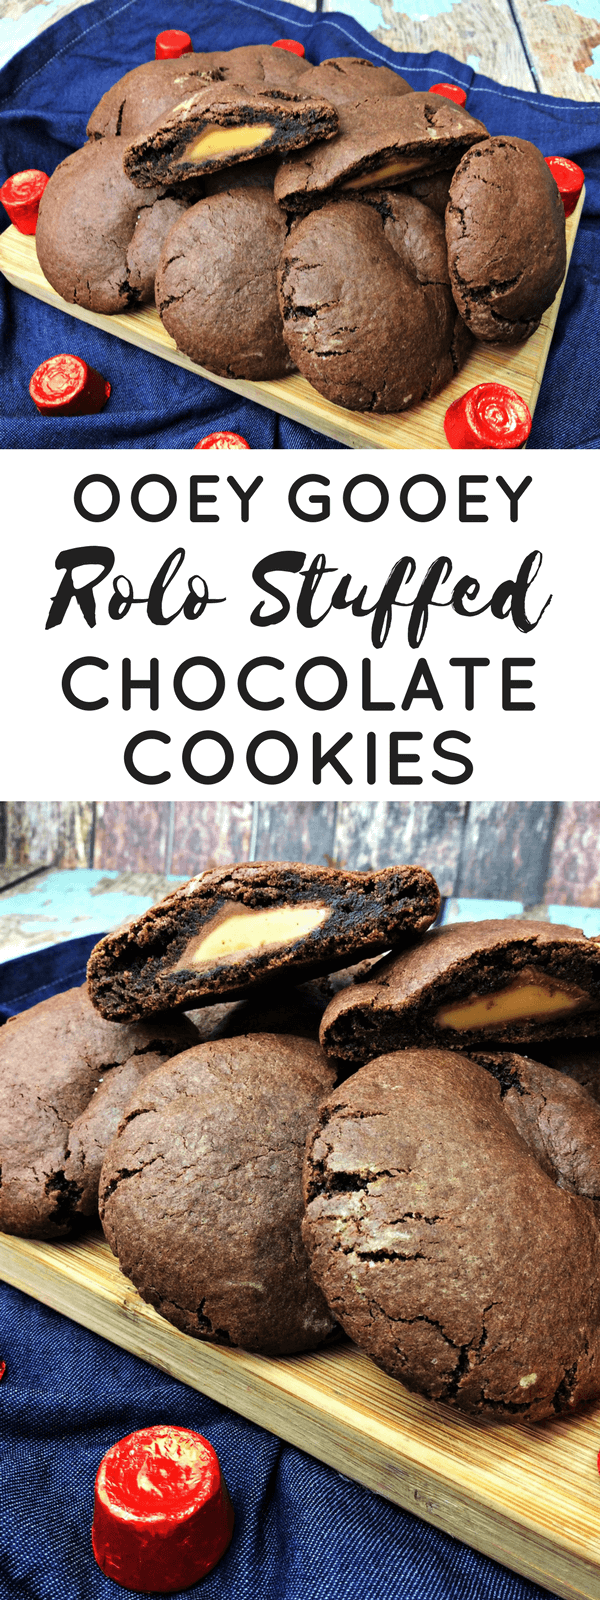 These Rolo stuffed chocolate cookies are going to be a new family favorite. Delicious, soft, and chewy chocolate cookies with an ooey gooey Rolo center.